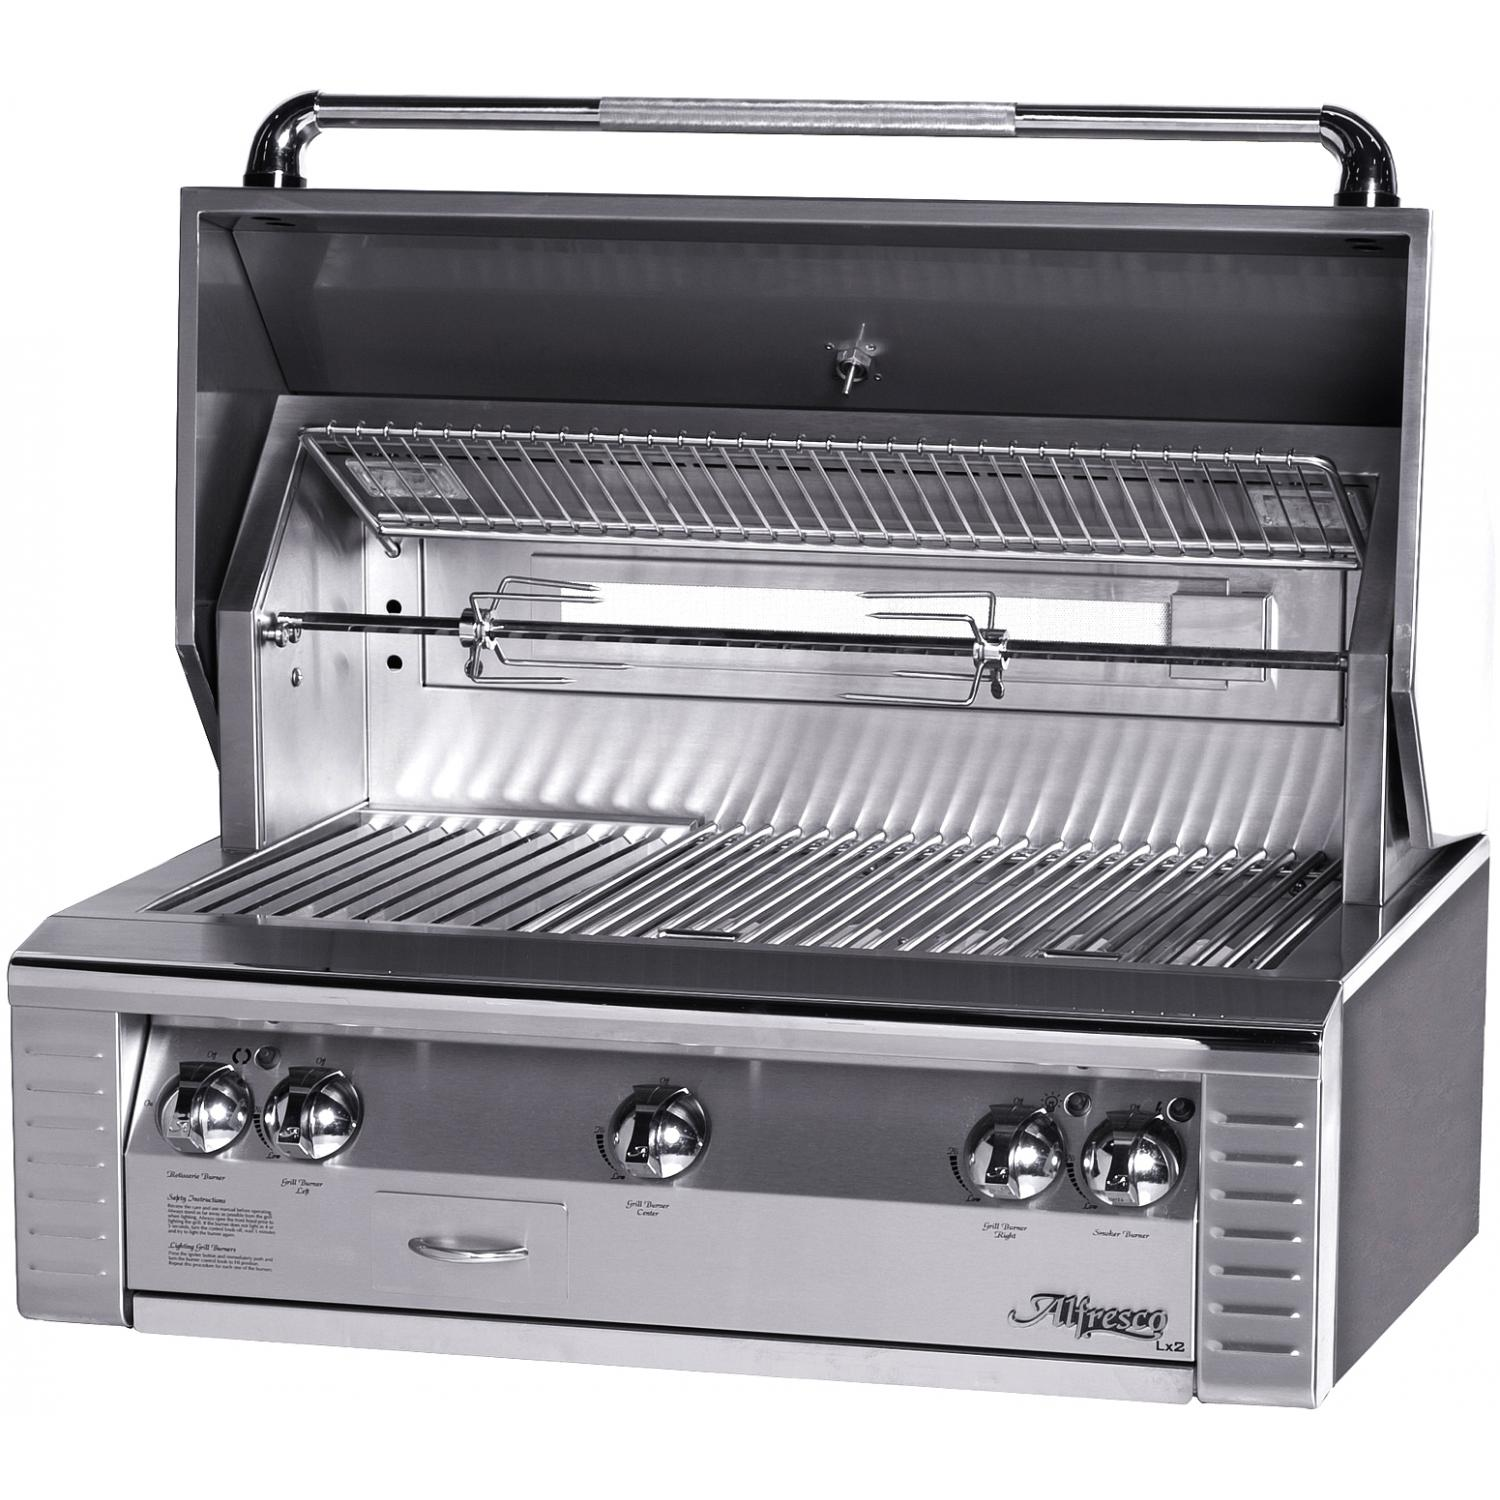 Alfresco Lx2 36-inch Built In Natural Gas Grill With Rotisserie at Sears.com